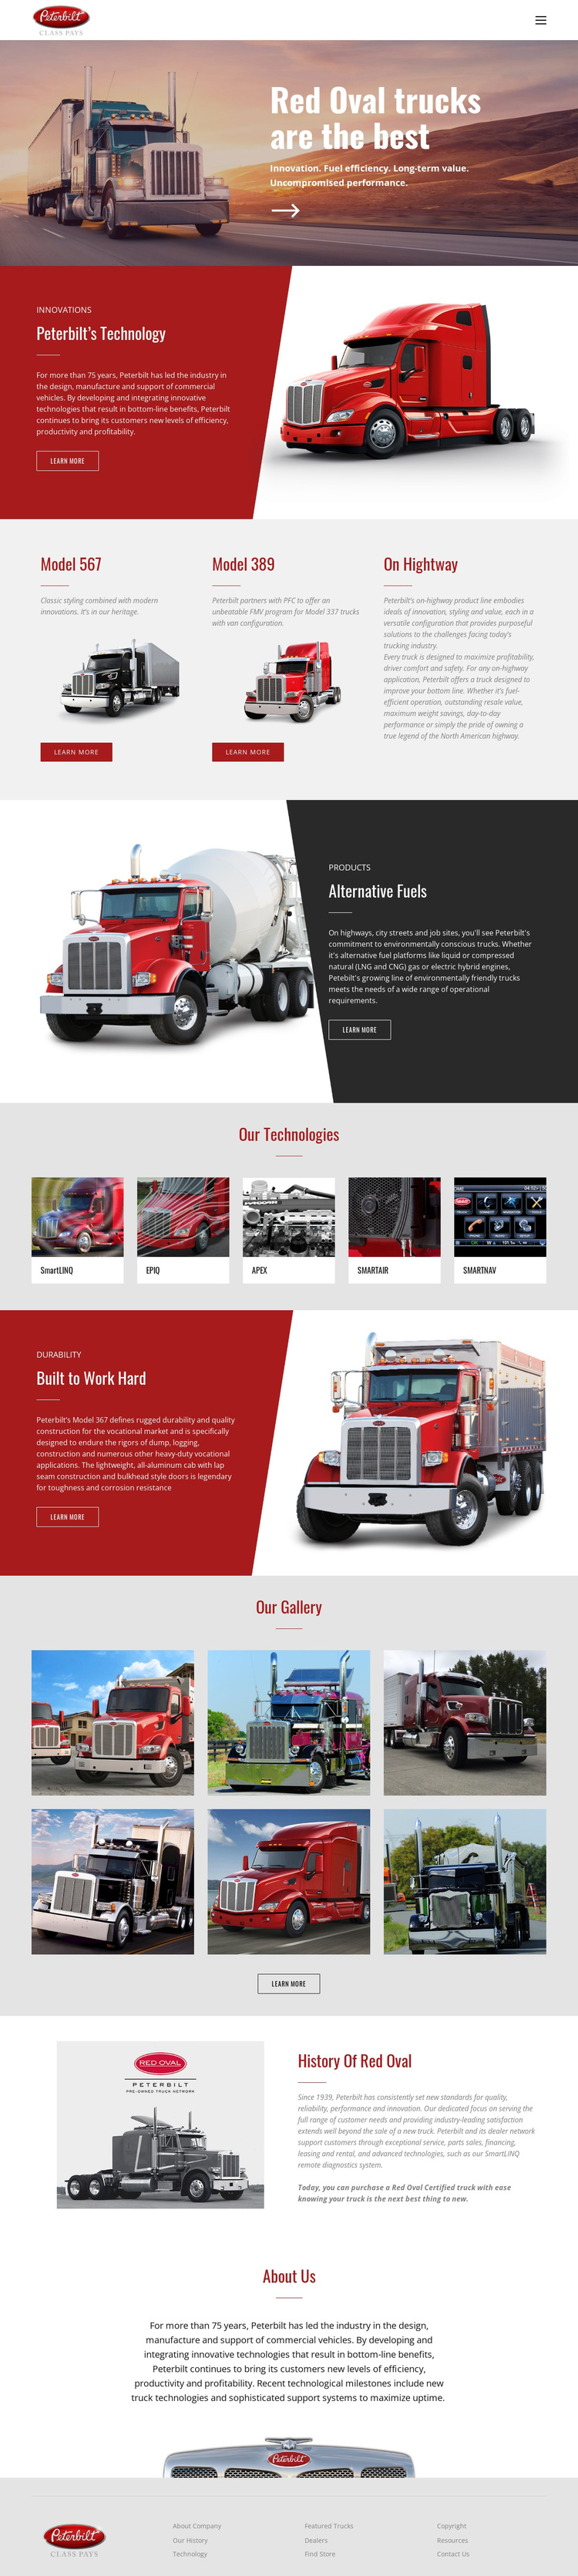 Red oval truck transportaion Joomla Template